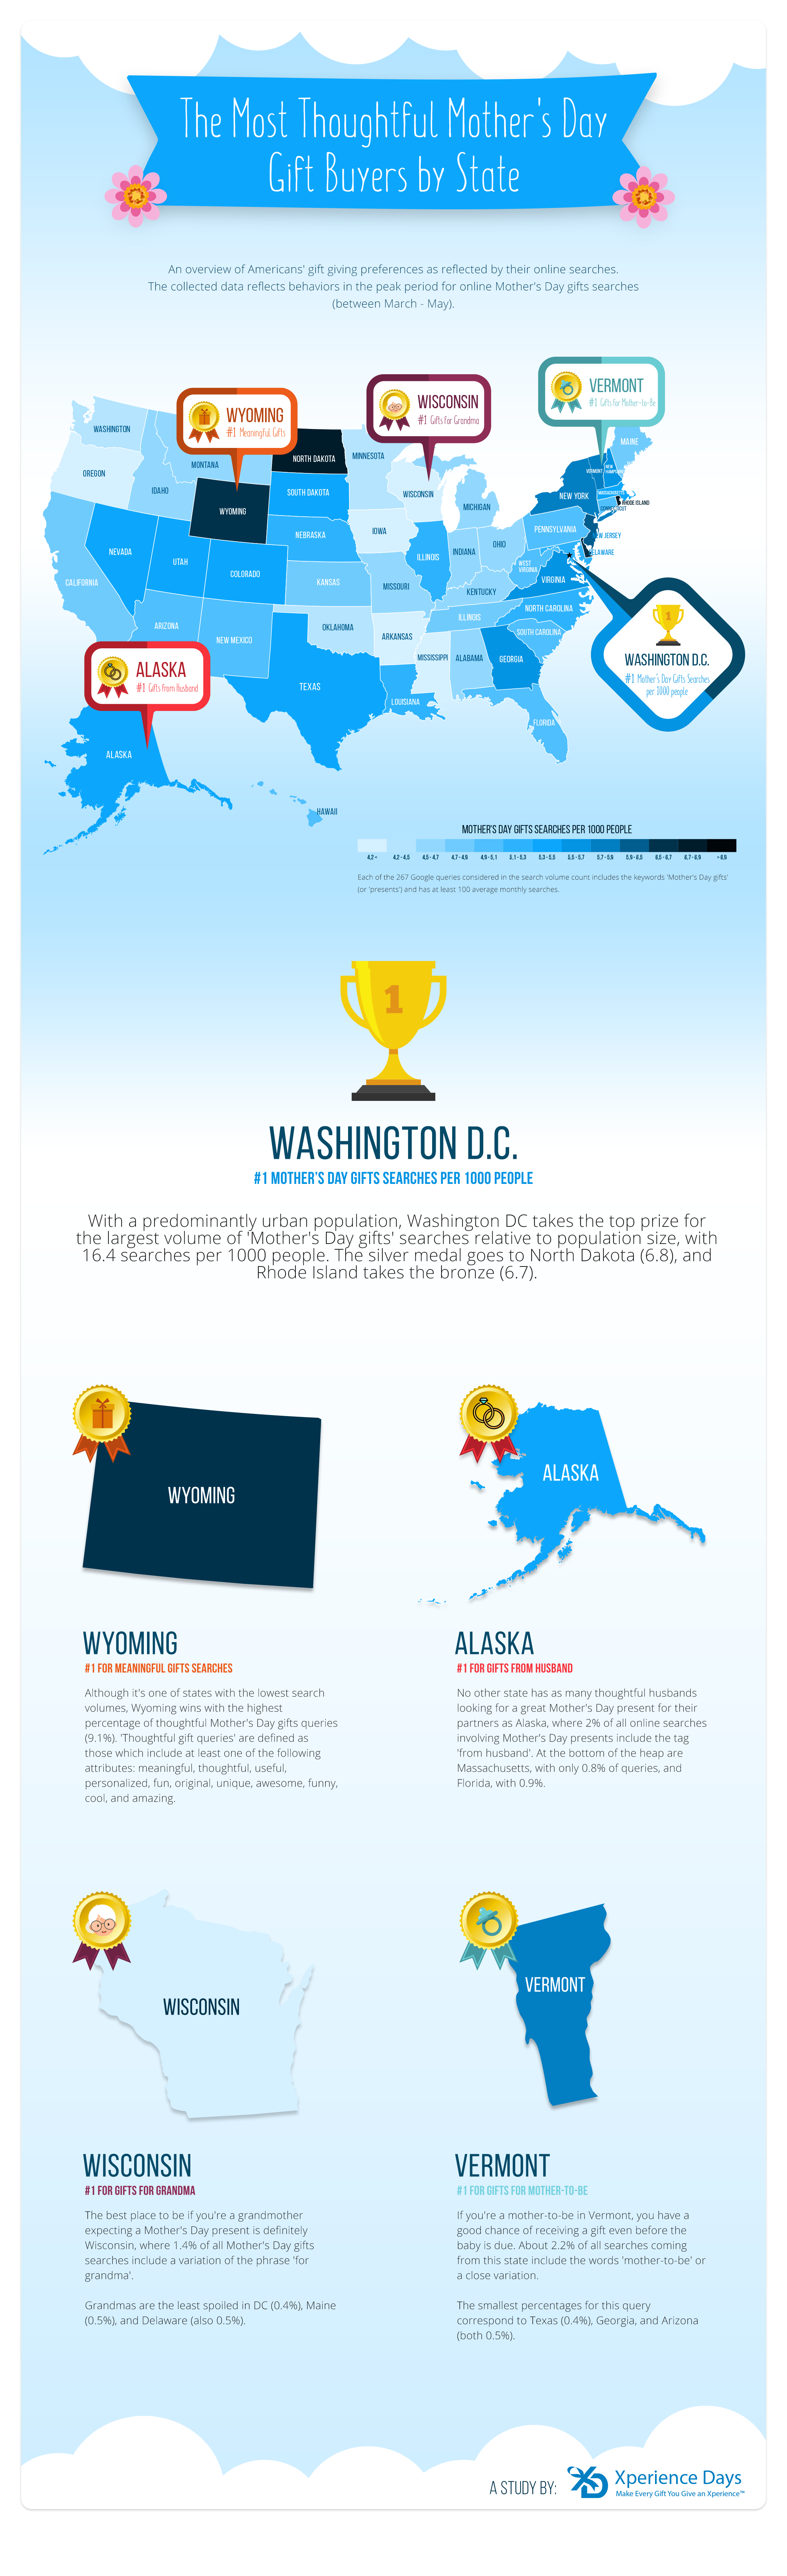 Most Thoughtful Mother's Day Gift Buyers by State